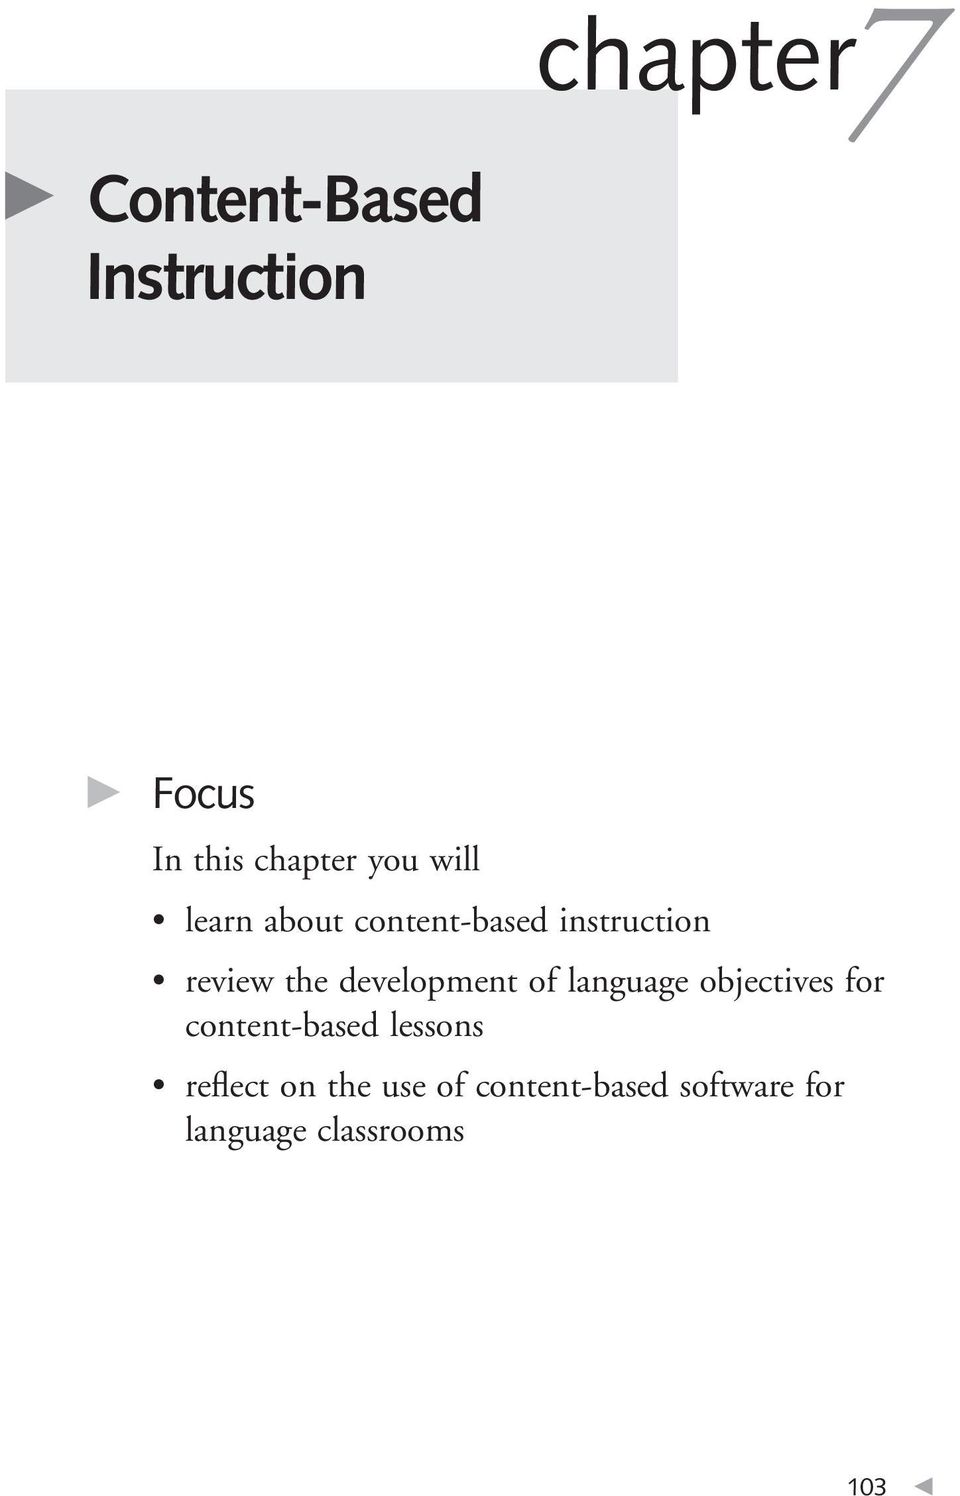 the development of language objectives for content-based lessons